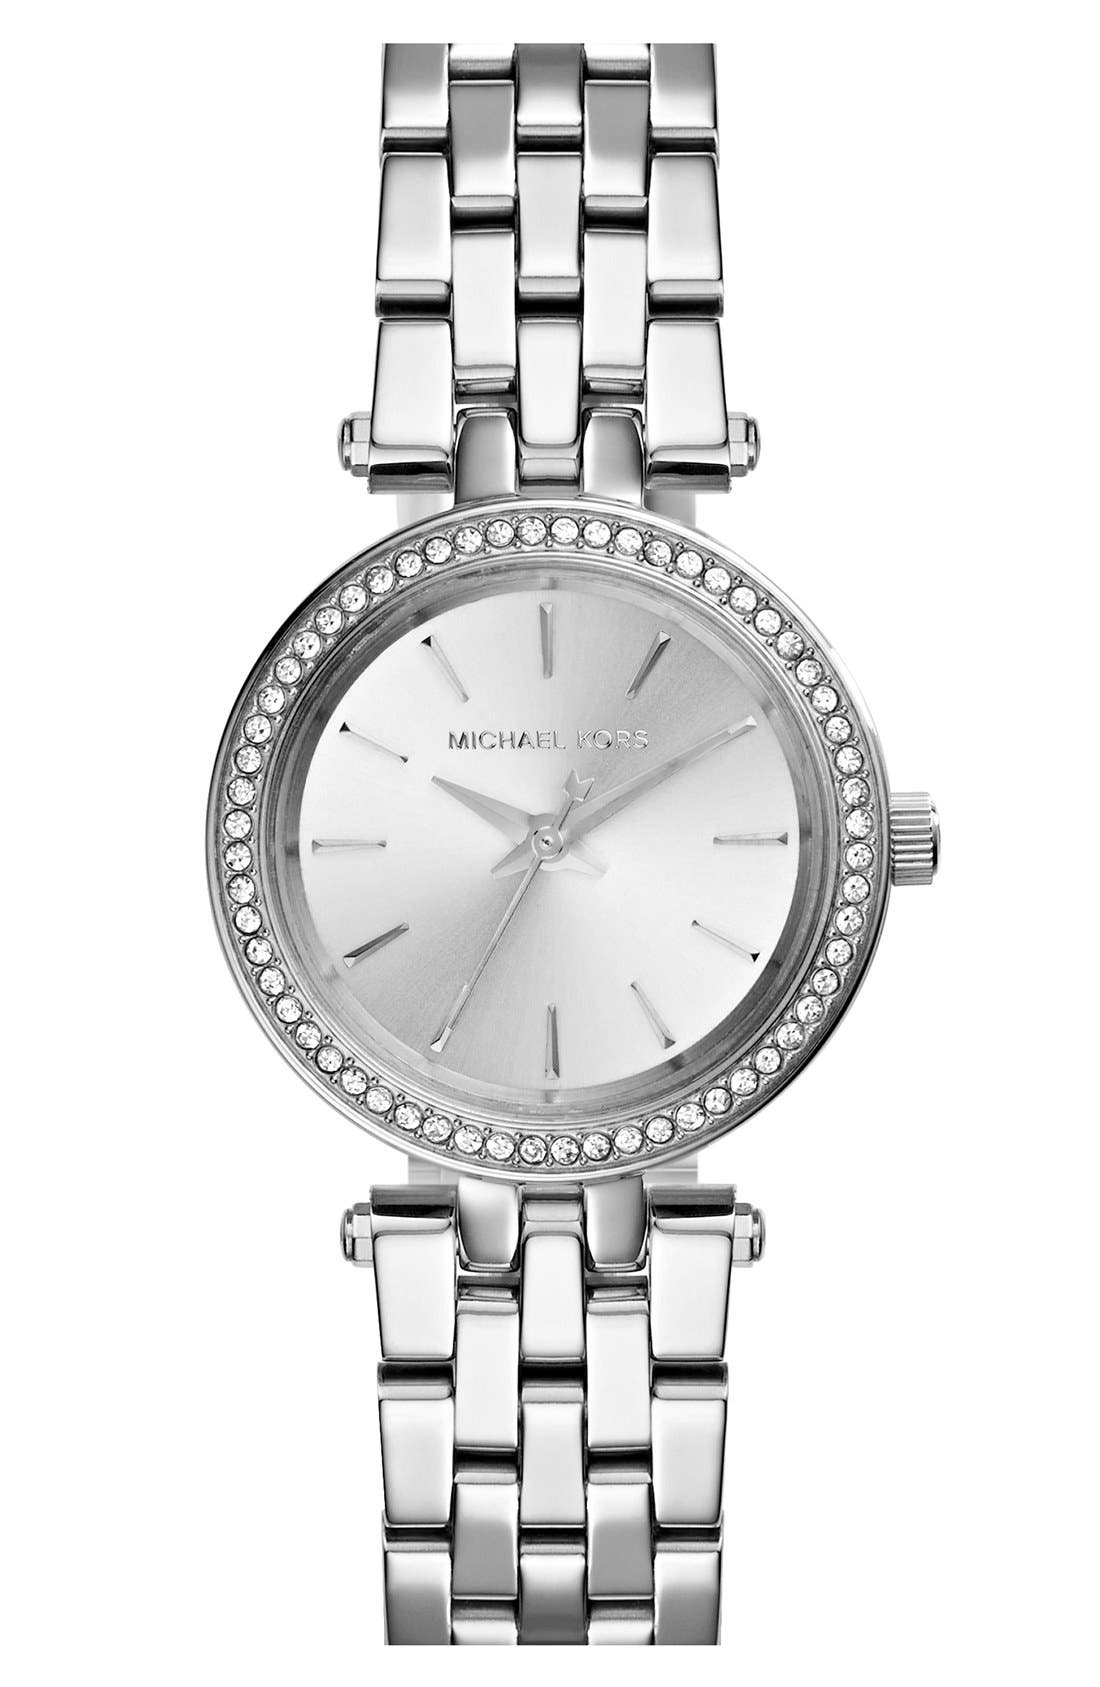 MICHAEL KORS Petite Darci Crystal Bezel Bracelet Watch, 26mm